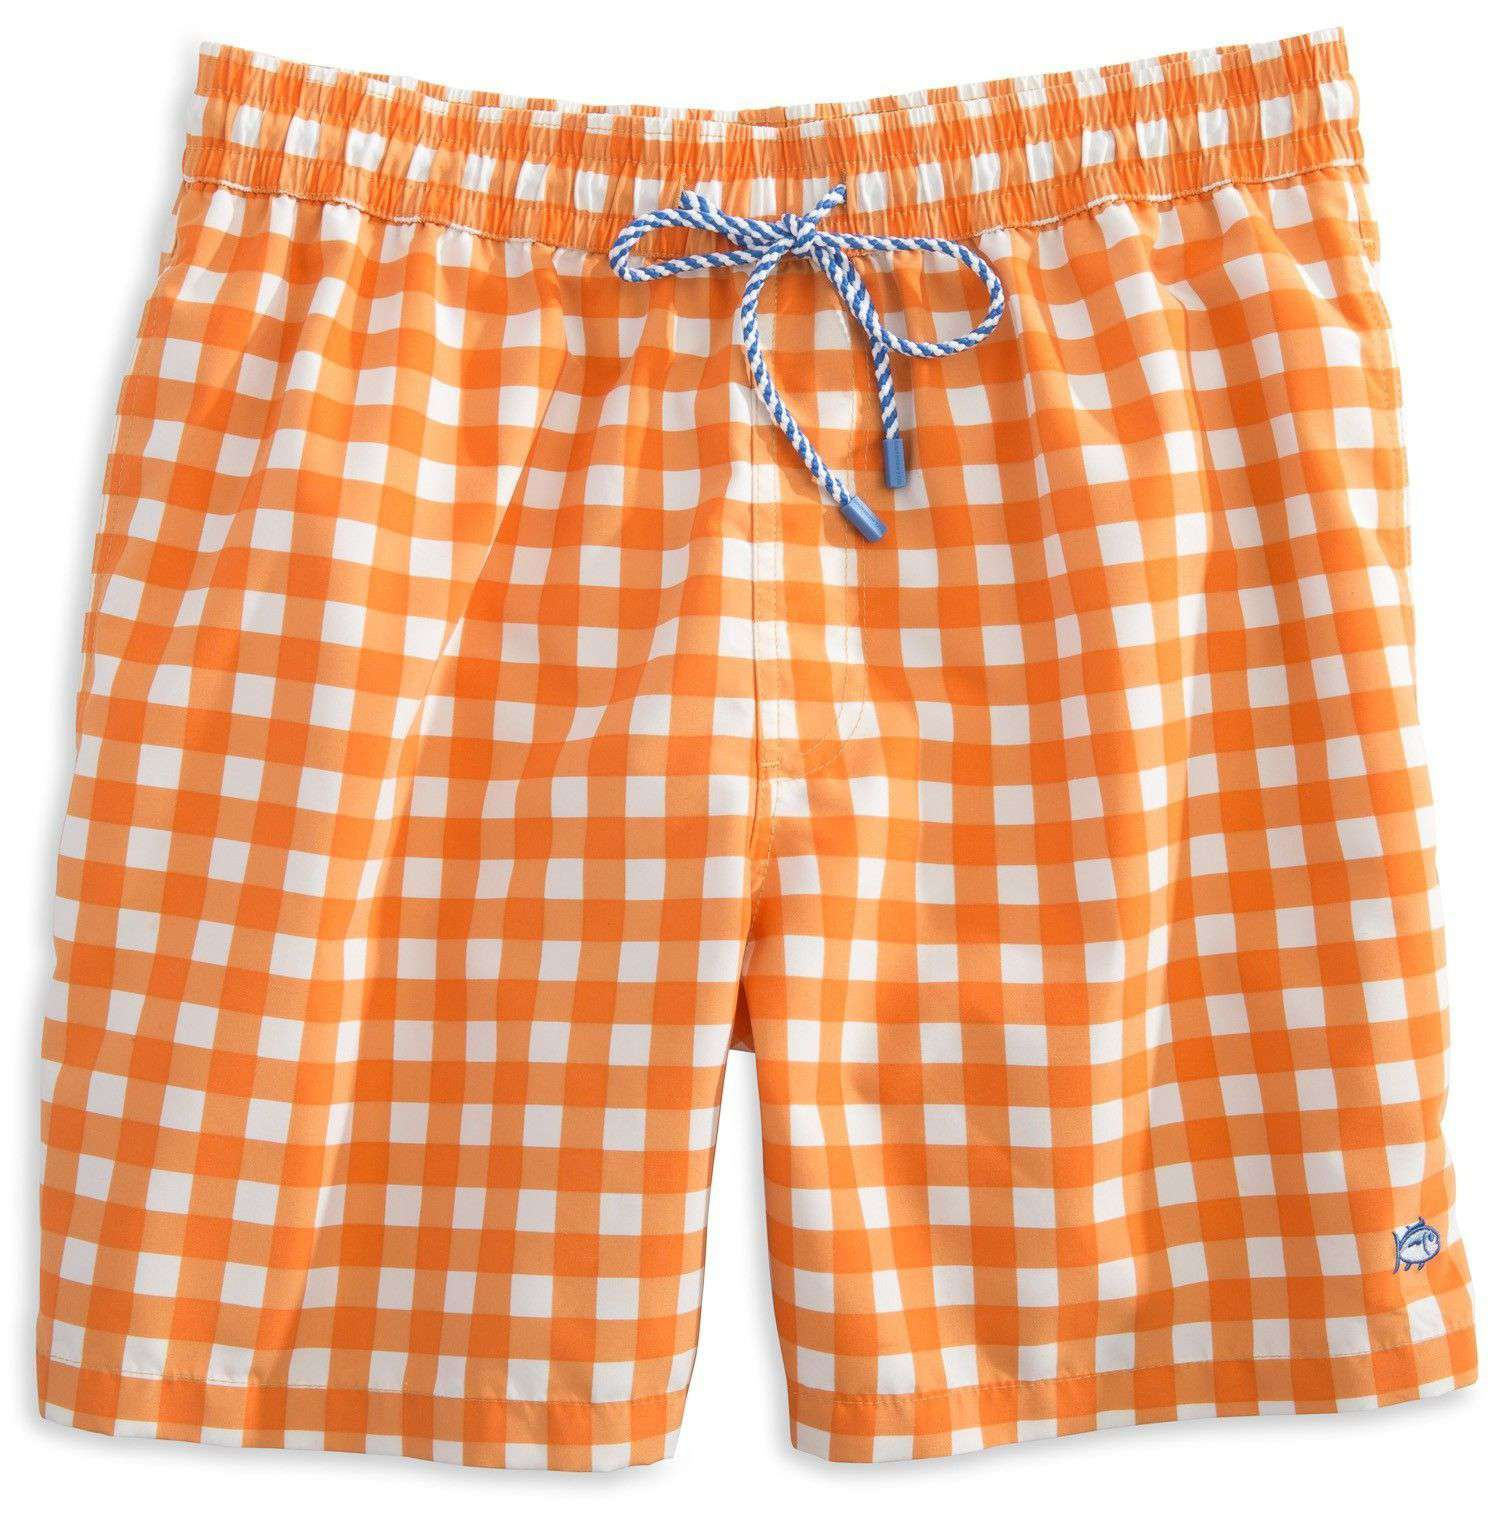 Men's Swimsuits - Gingham Swim Trunks In Orange By Southern Tide